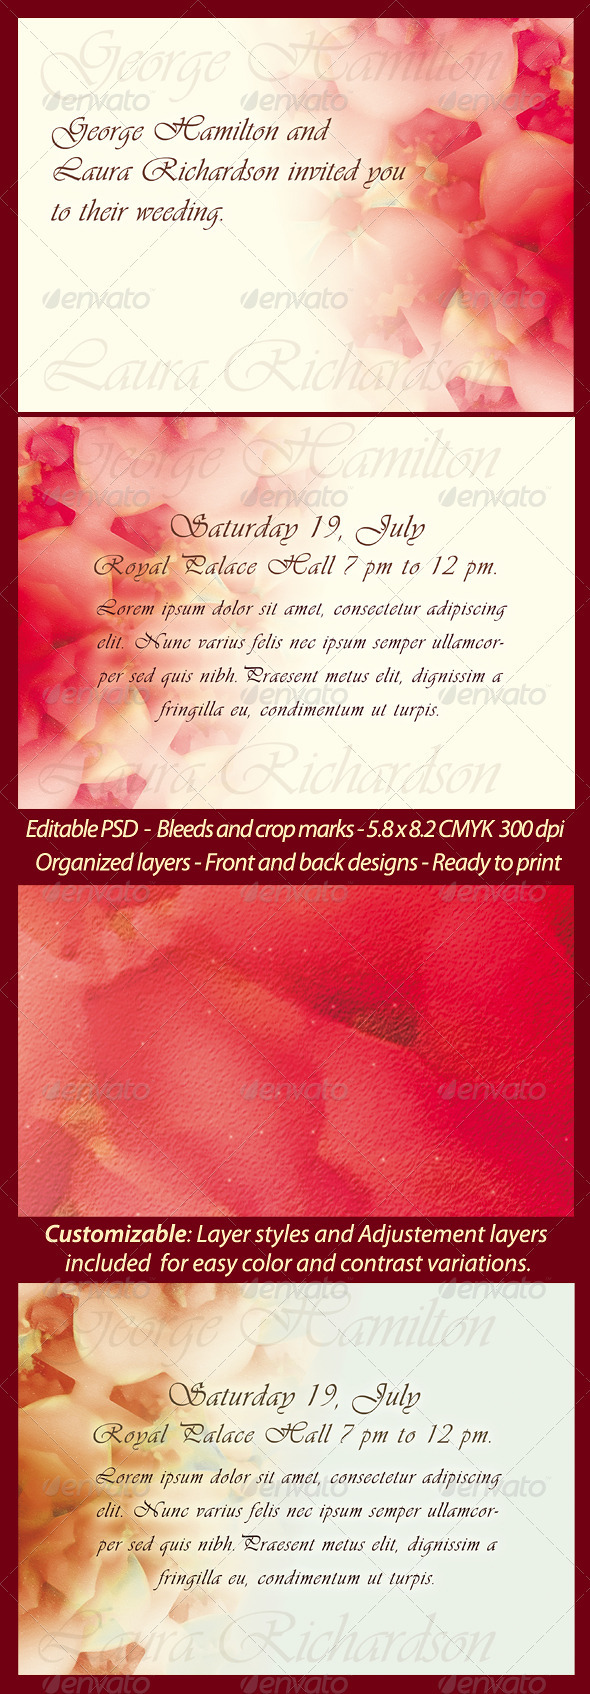 Wedding/Engagement Invitation Template - Weddings Cards & Invites